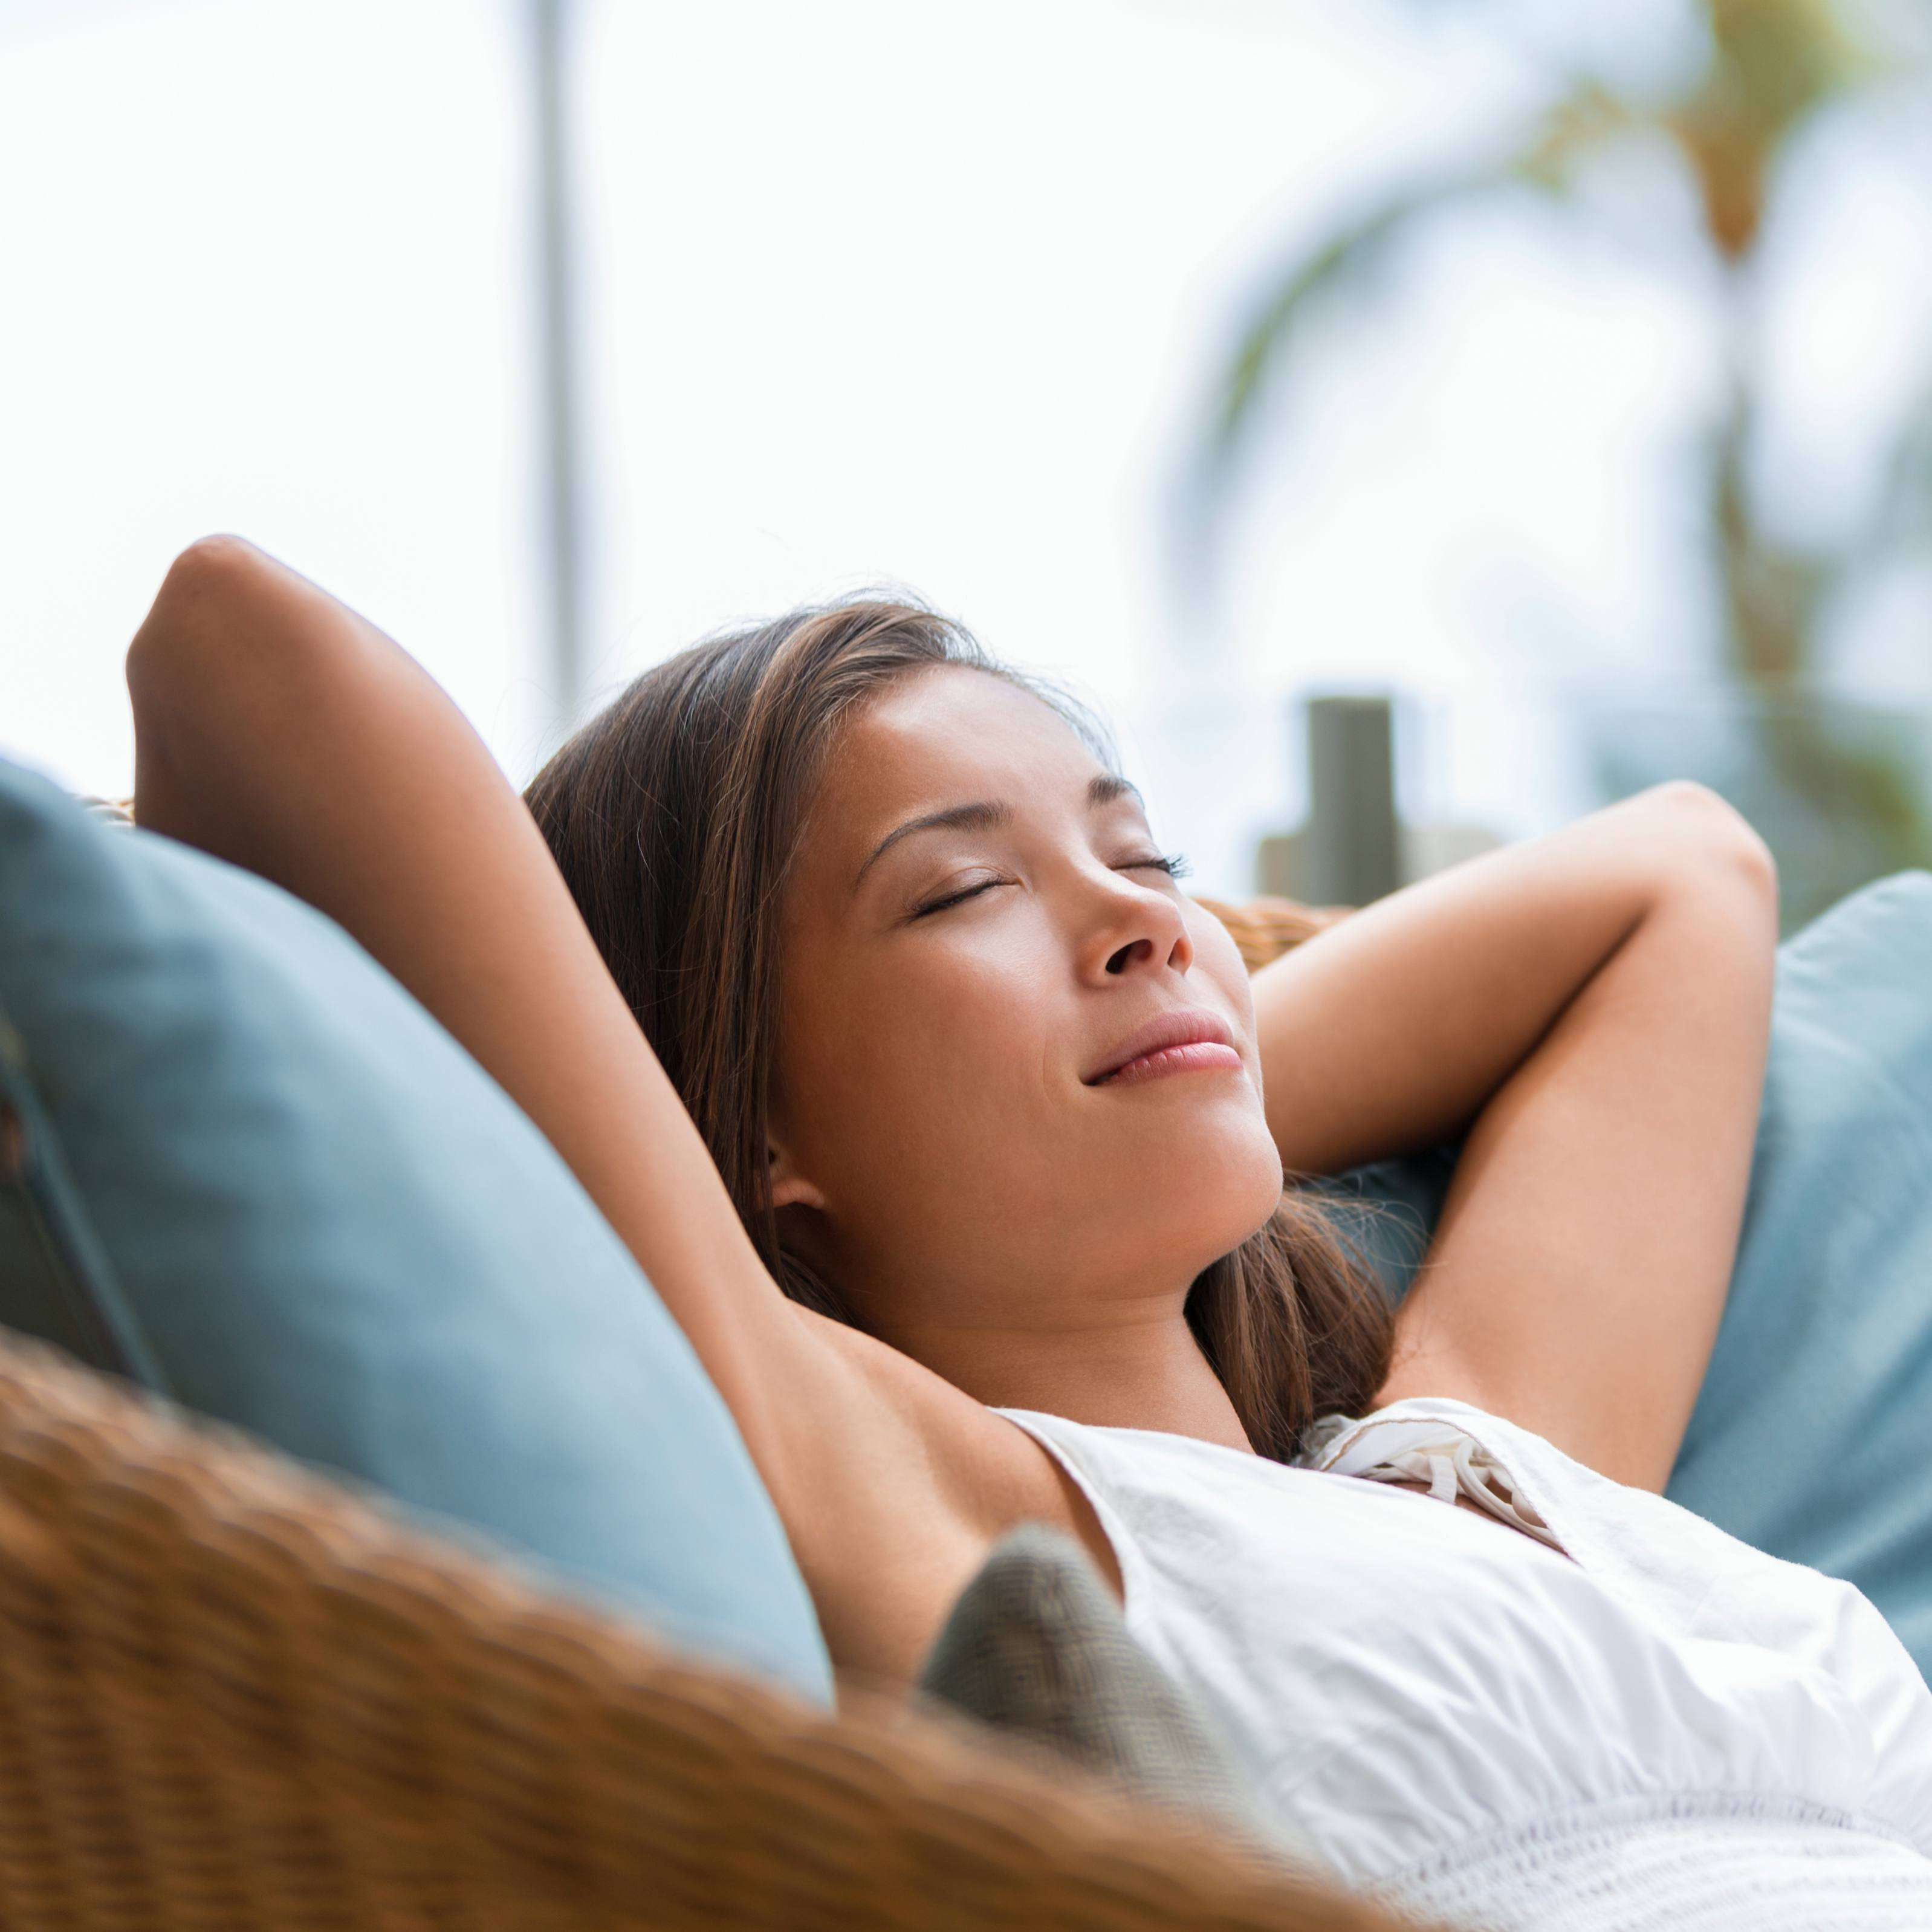 a young woman resting, sleeping, napping outside on a wicker couch